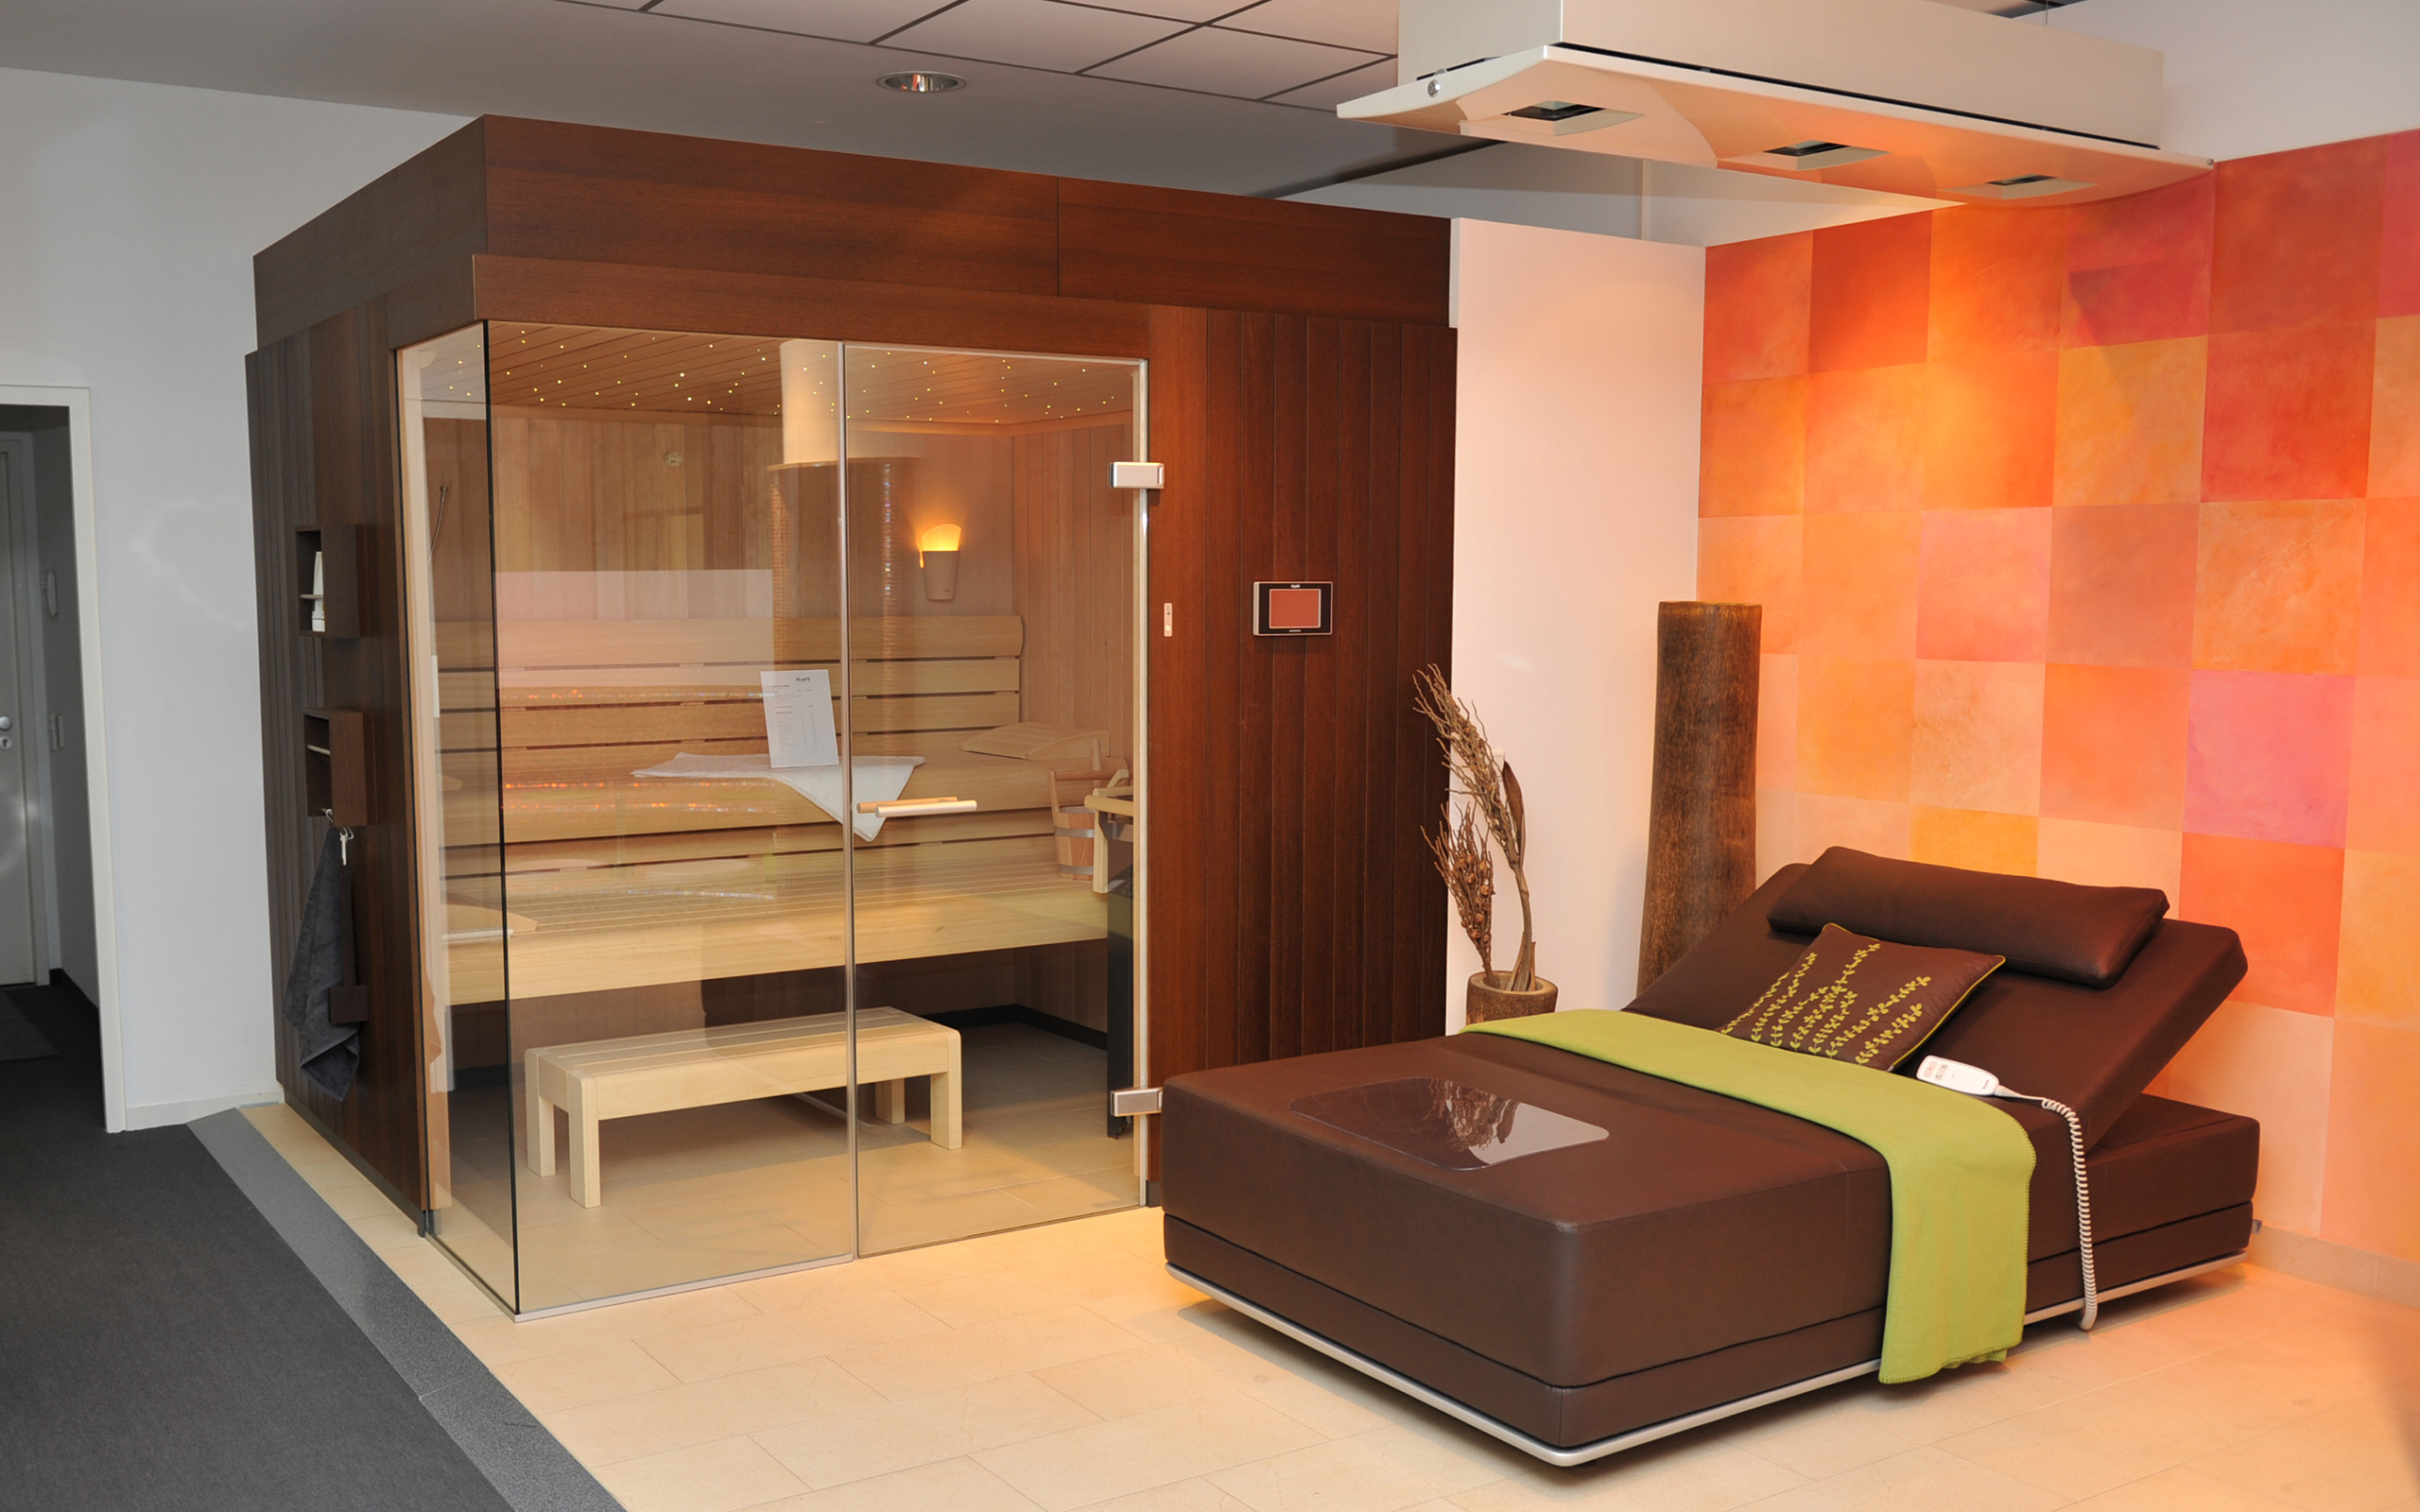 sauna showroom in bielefeld. Black Bedroom Furniture Sets. Home Design Ideas